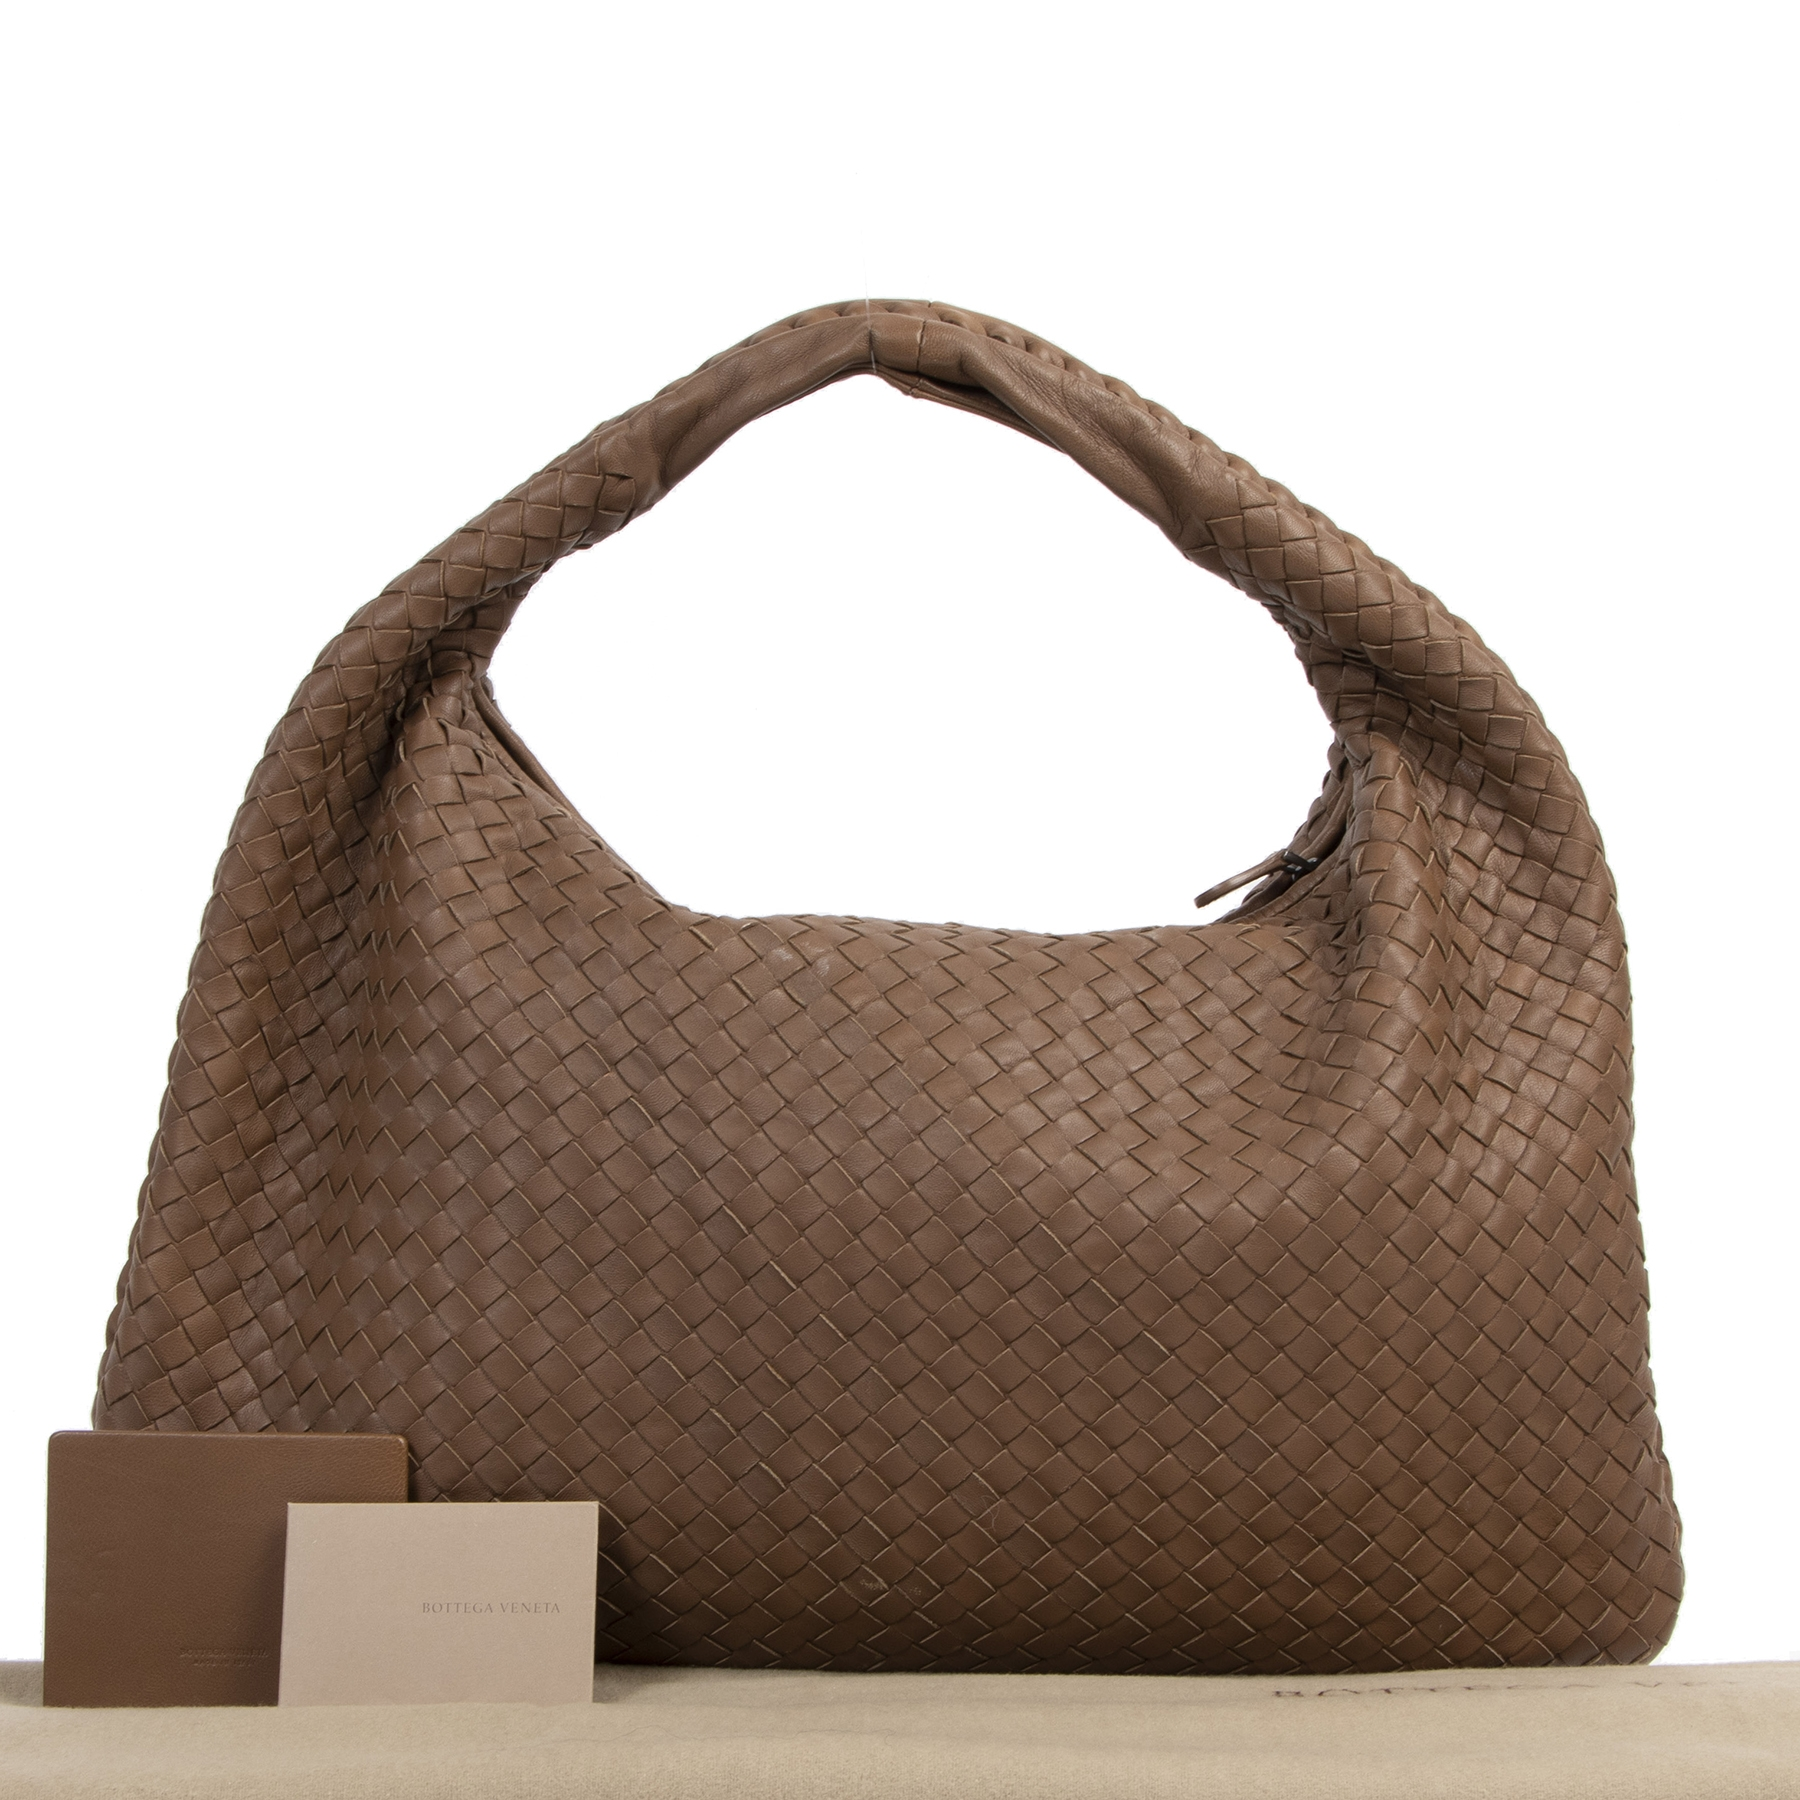 Authentieke tweedehands vintage Bottega Veneta Large Brown Hobo Bag koop online webshop LabelLOV